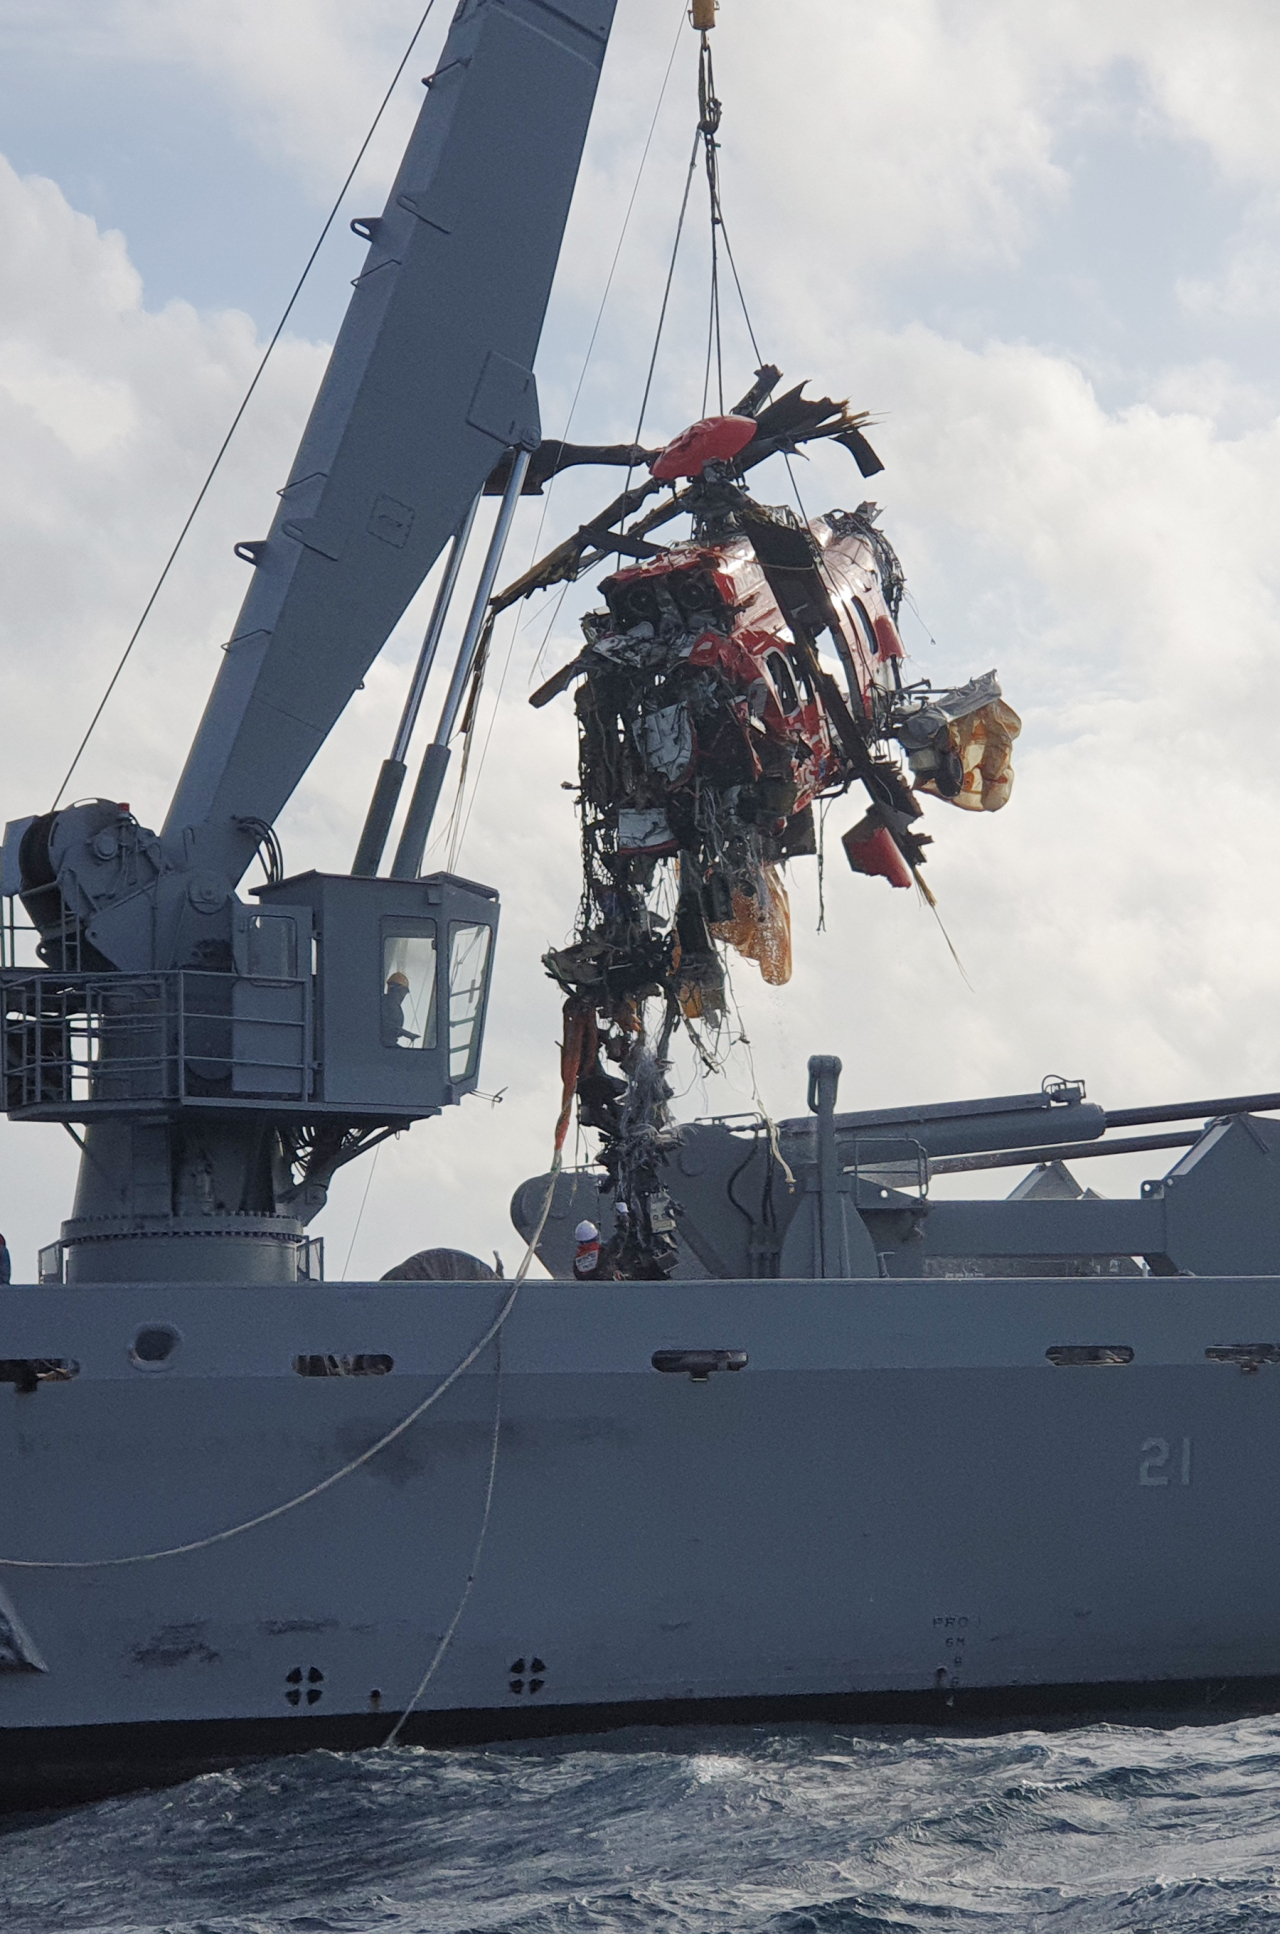 A salvaged chopper is being transported on Nov. 3 in the East Sea. (Yonhap)